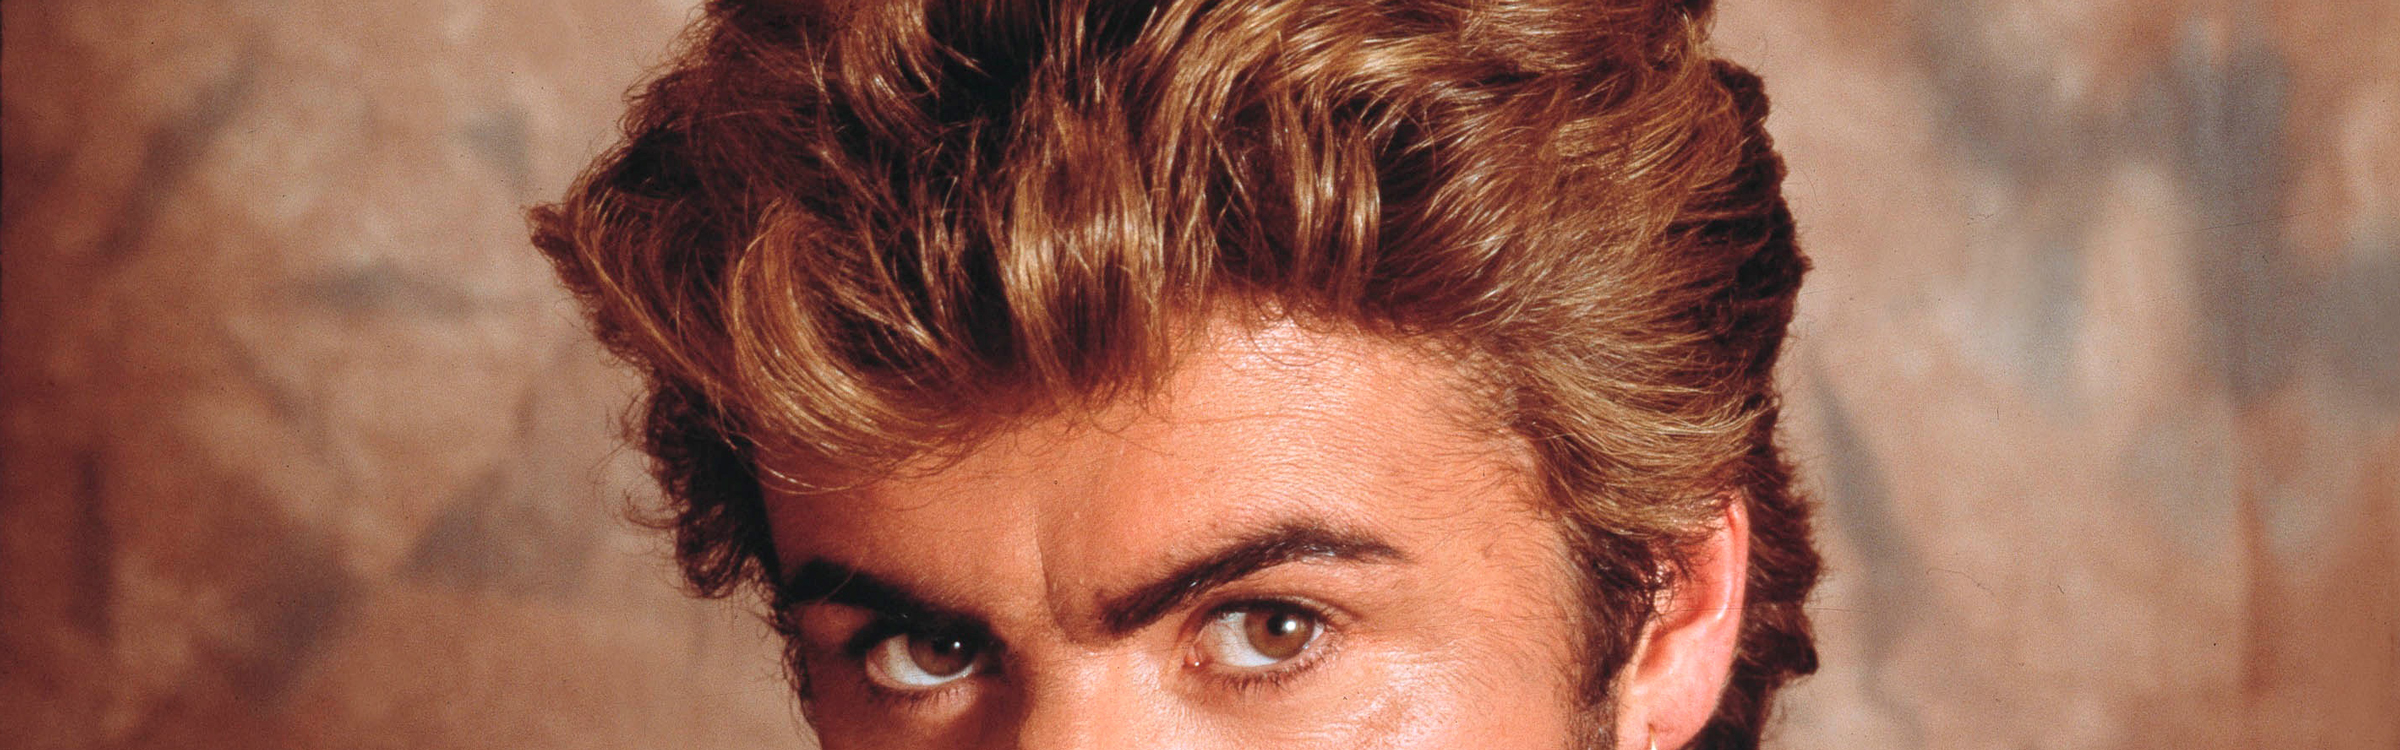 George michael header